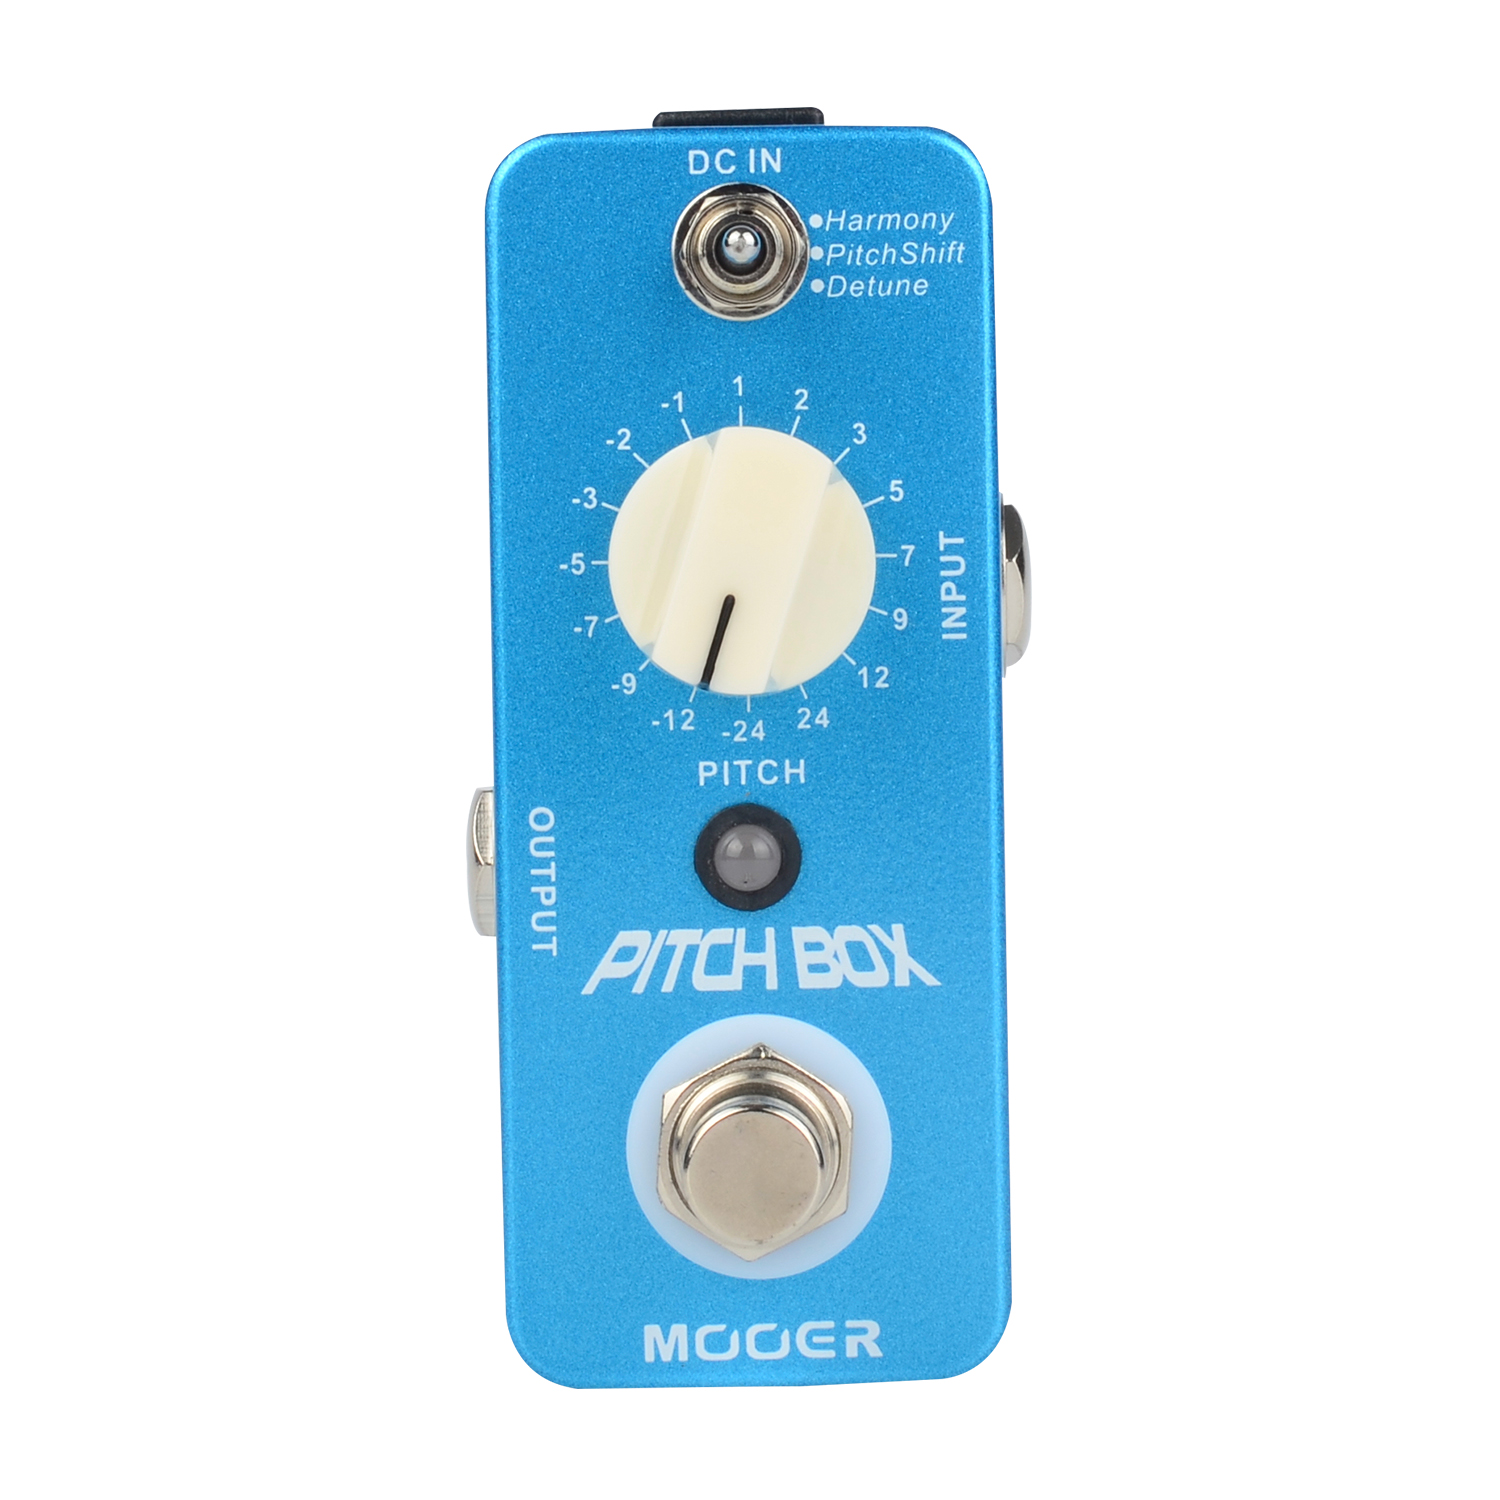 Mooer Pitch Box Guitar Effect Pedal True Bypass Detune Harmony Shift Effect Modes MPS1 mooer skyverb reverb effect pedal true bypass studio church plate modes digital electric guitar effects